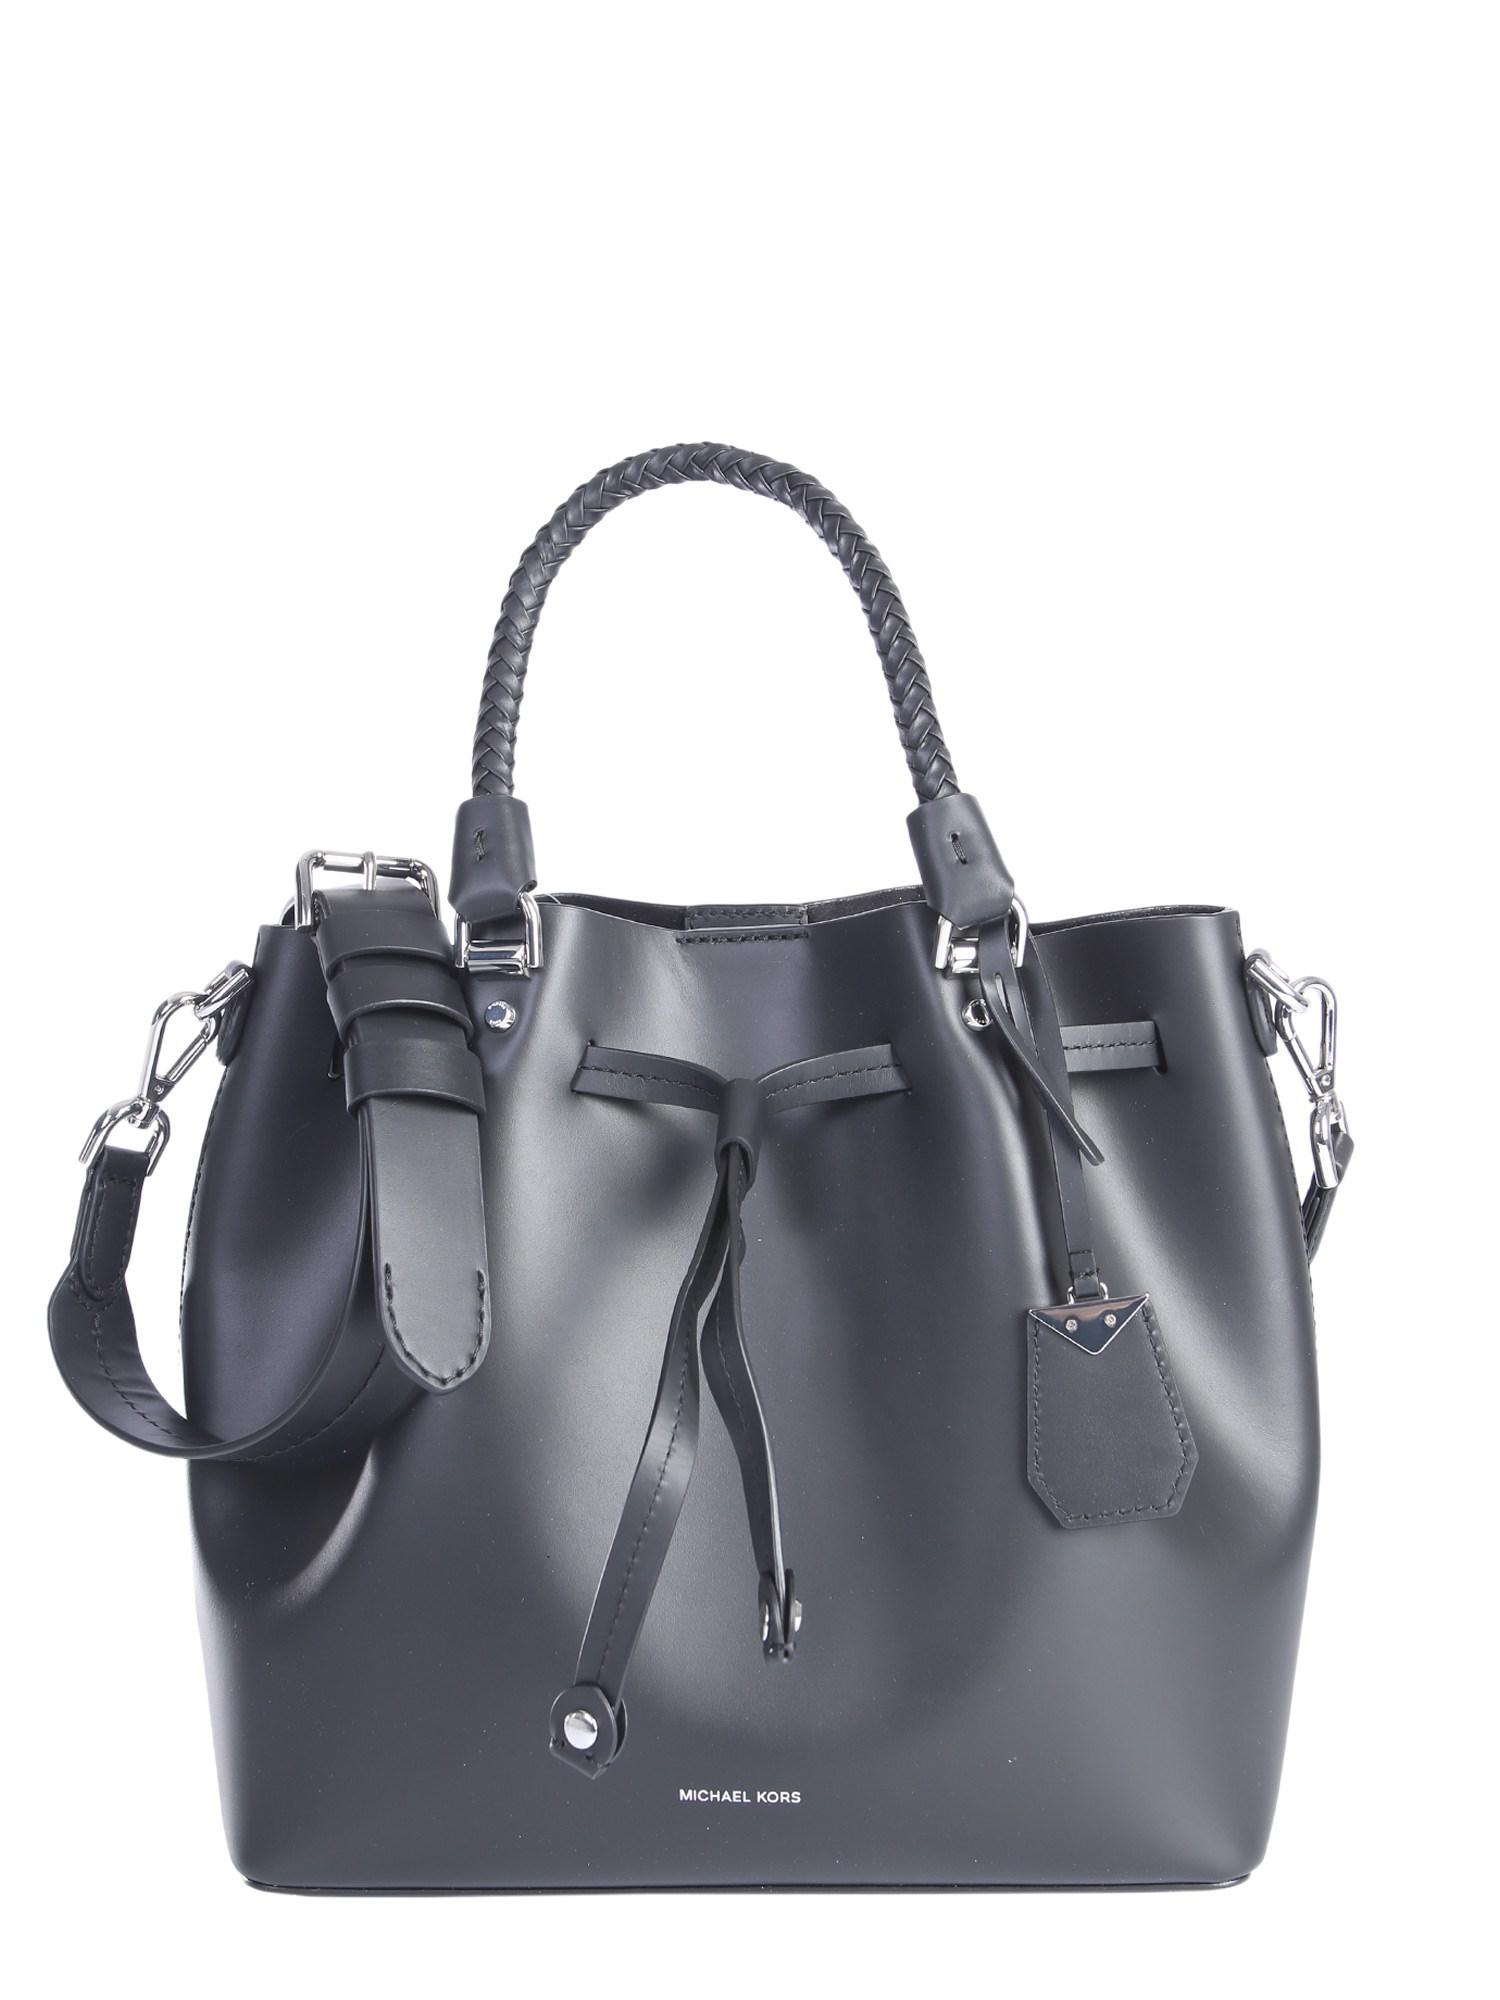 5409a4907c21 Lyst - MICHAEL Michael Kors Blakely Leather Bucket Bag in Black